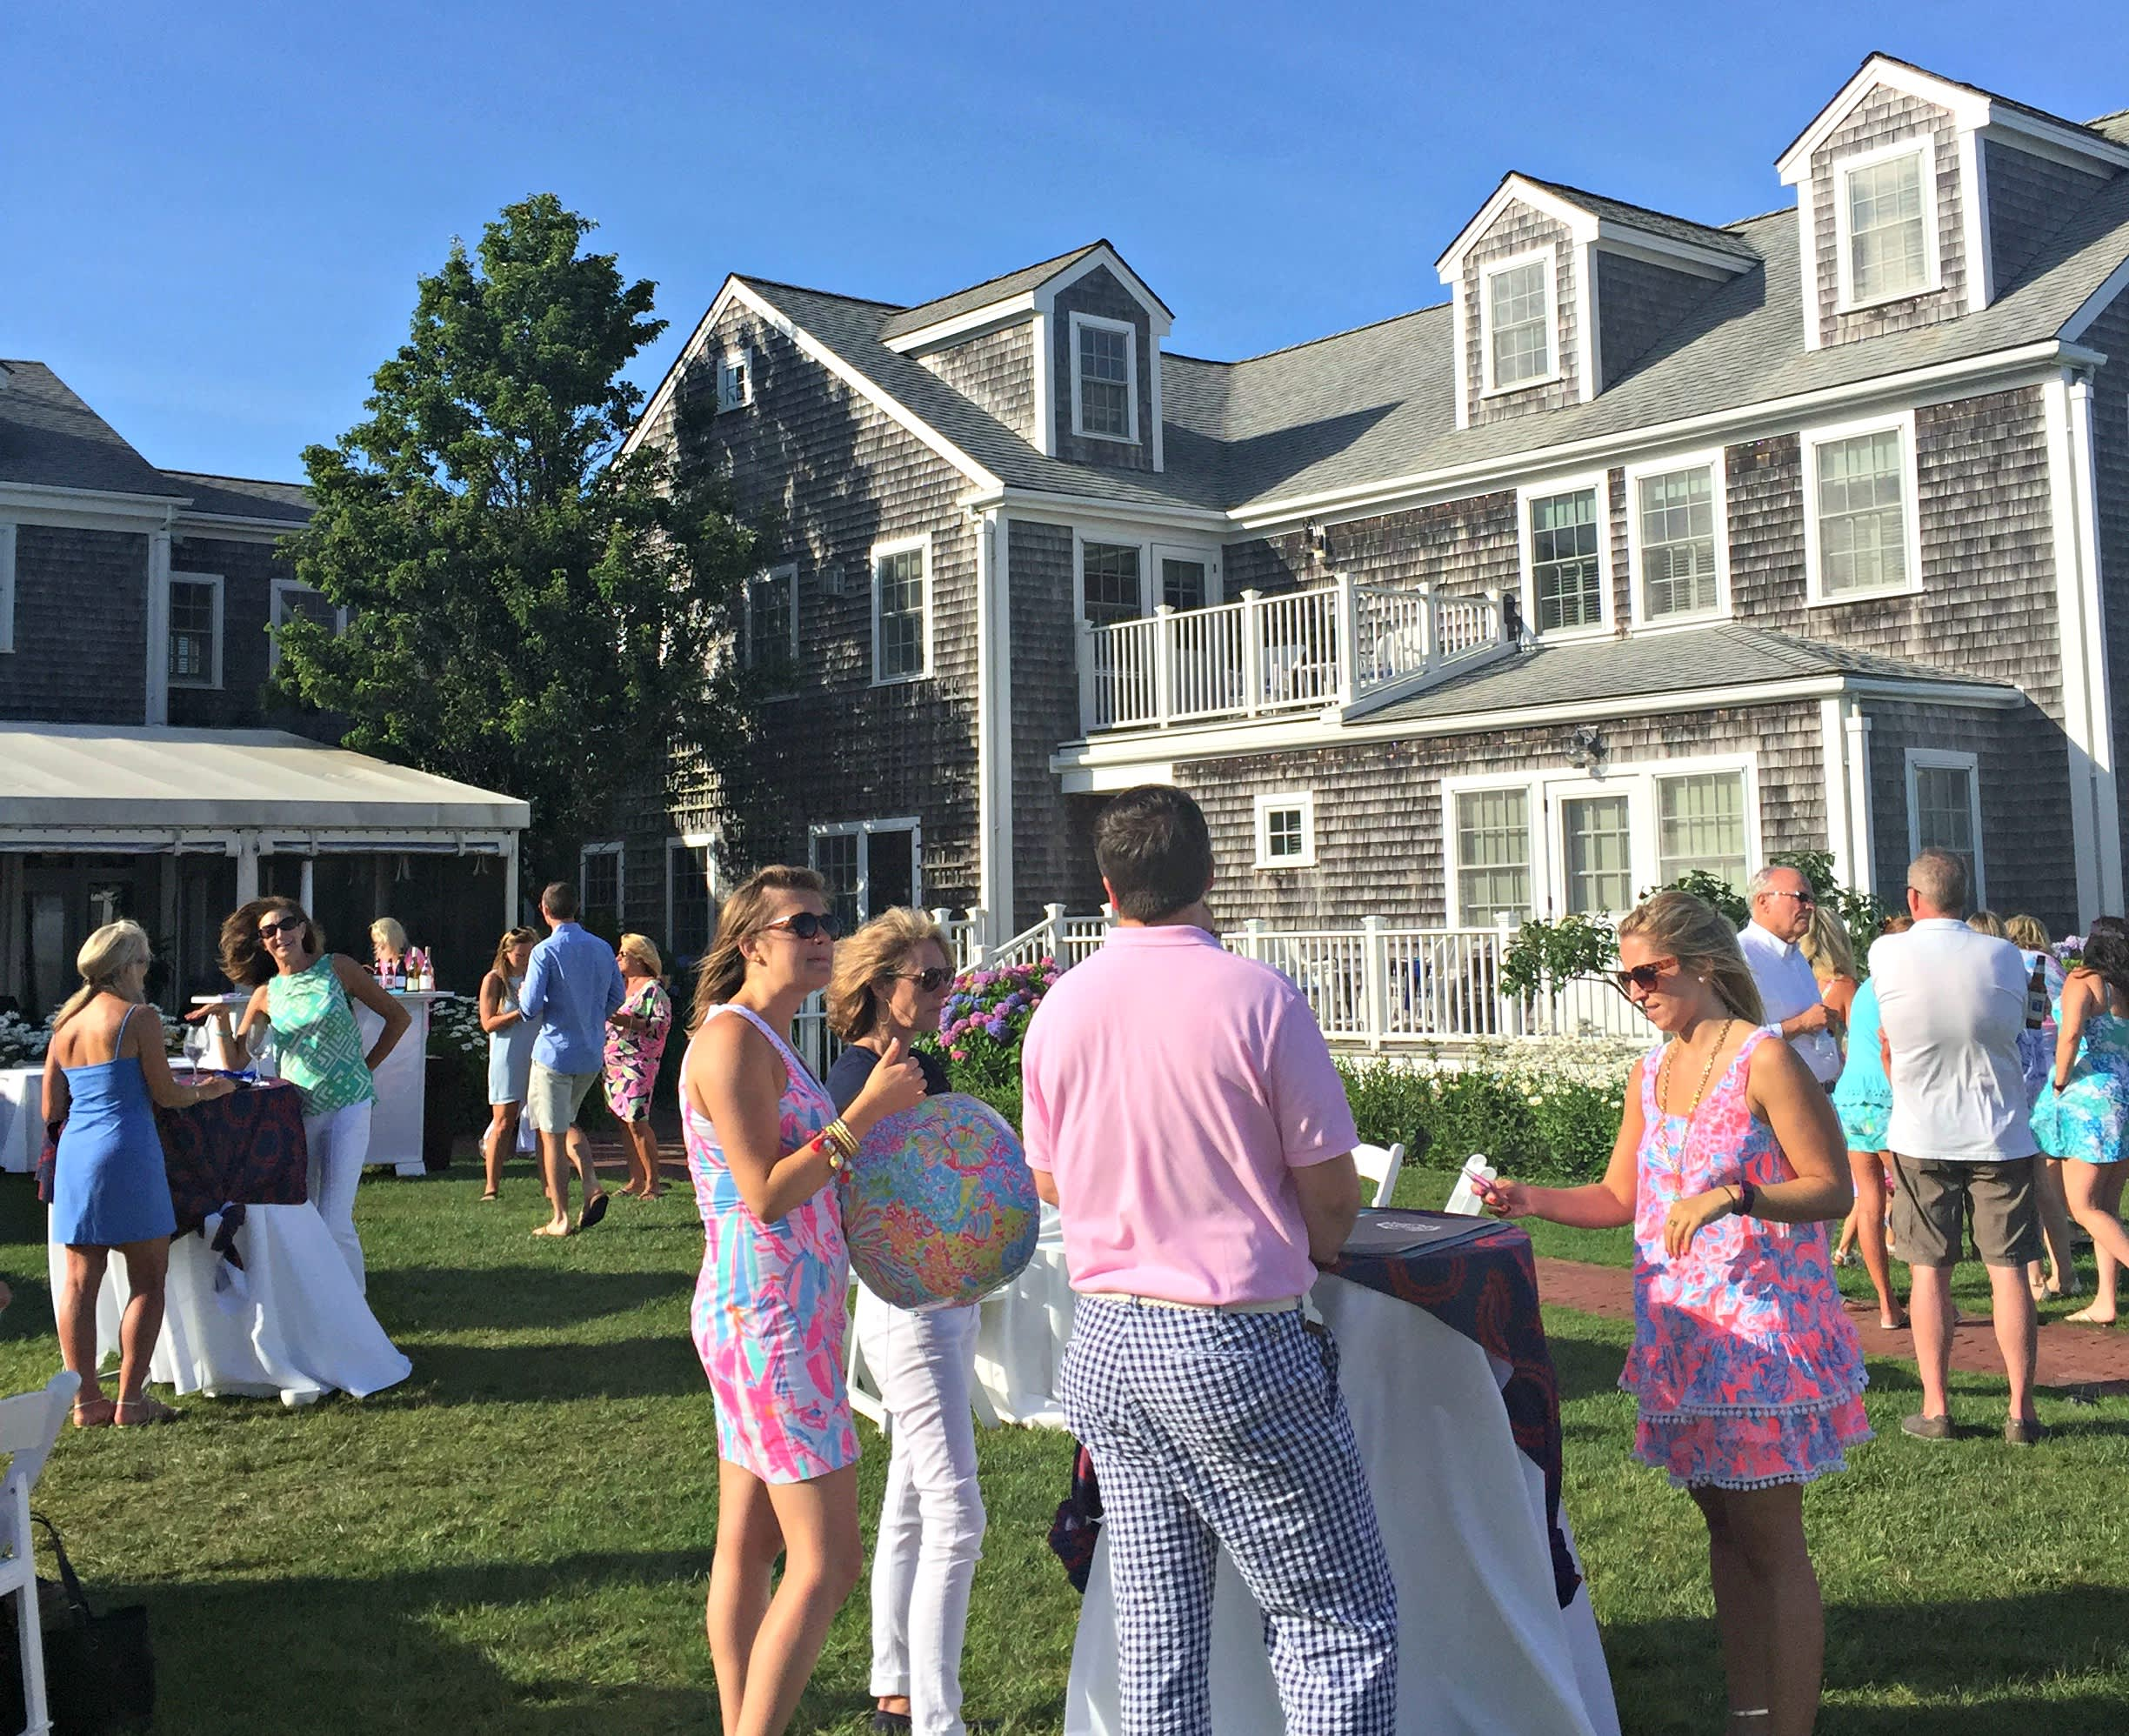 lilly party lawn